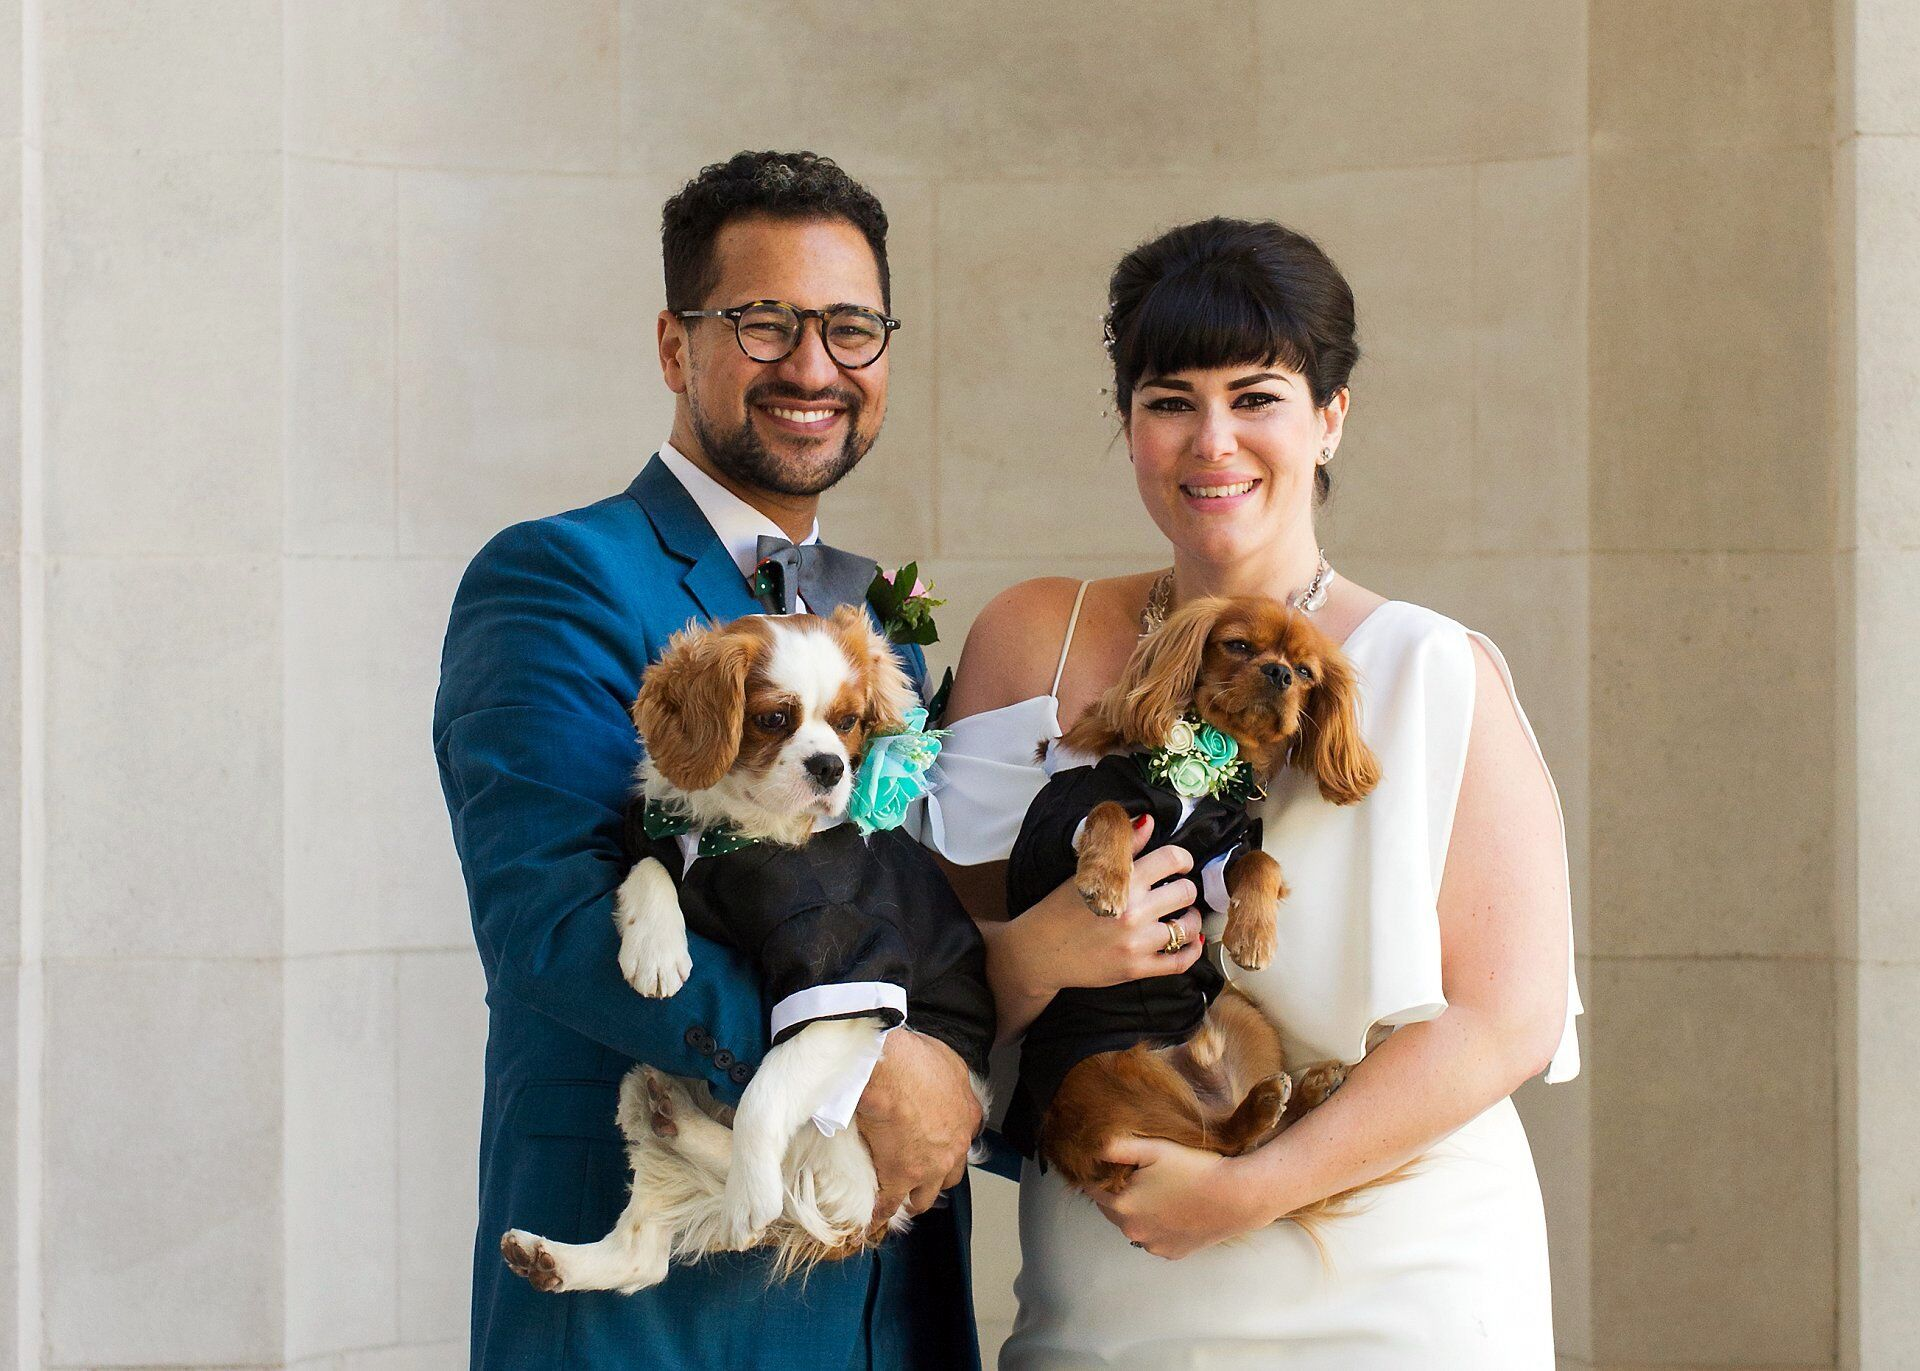 dogs wearing tuxedos at this stylish london wedding - old marylebone town hall (for wedding photography by the hour in the marylebone room)